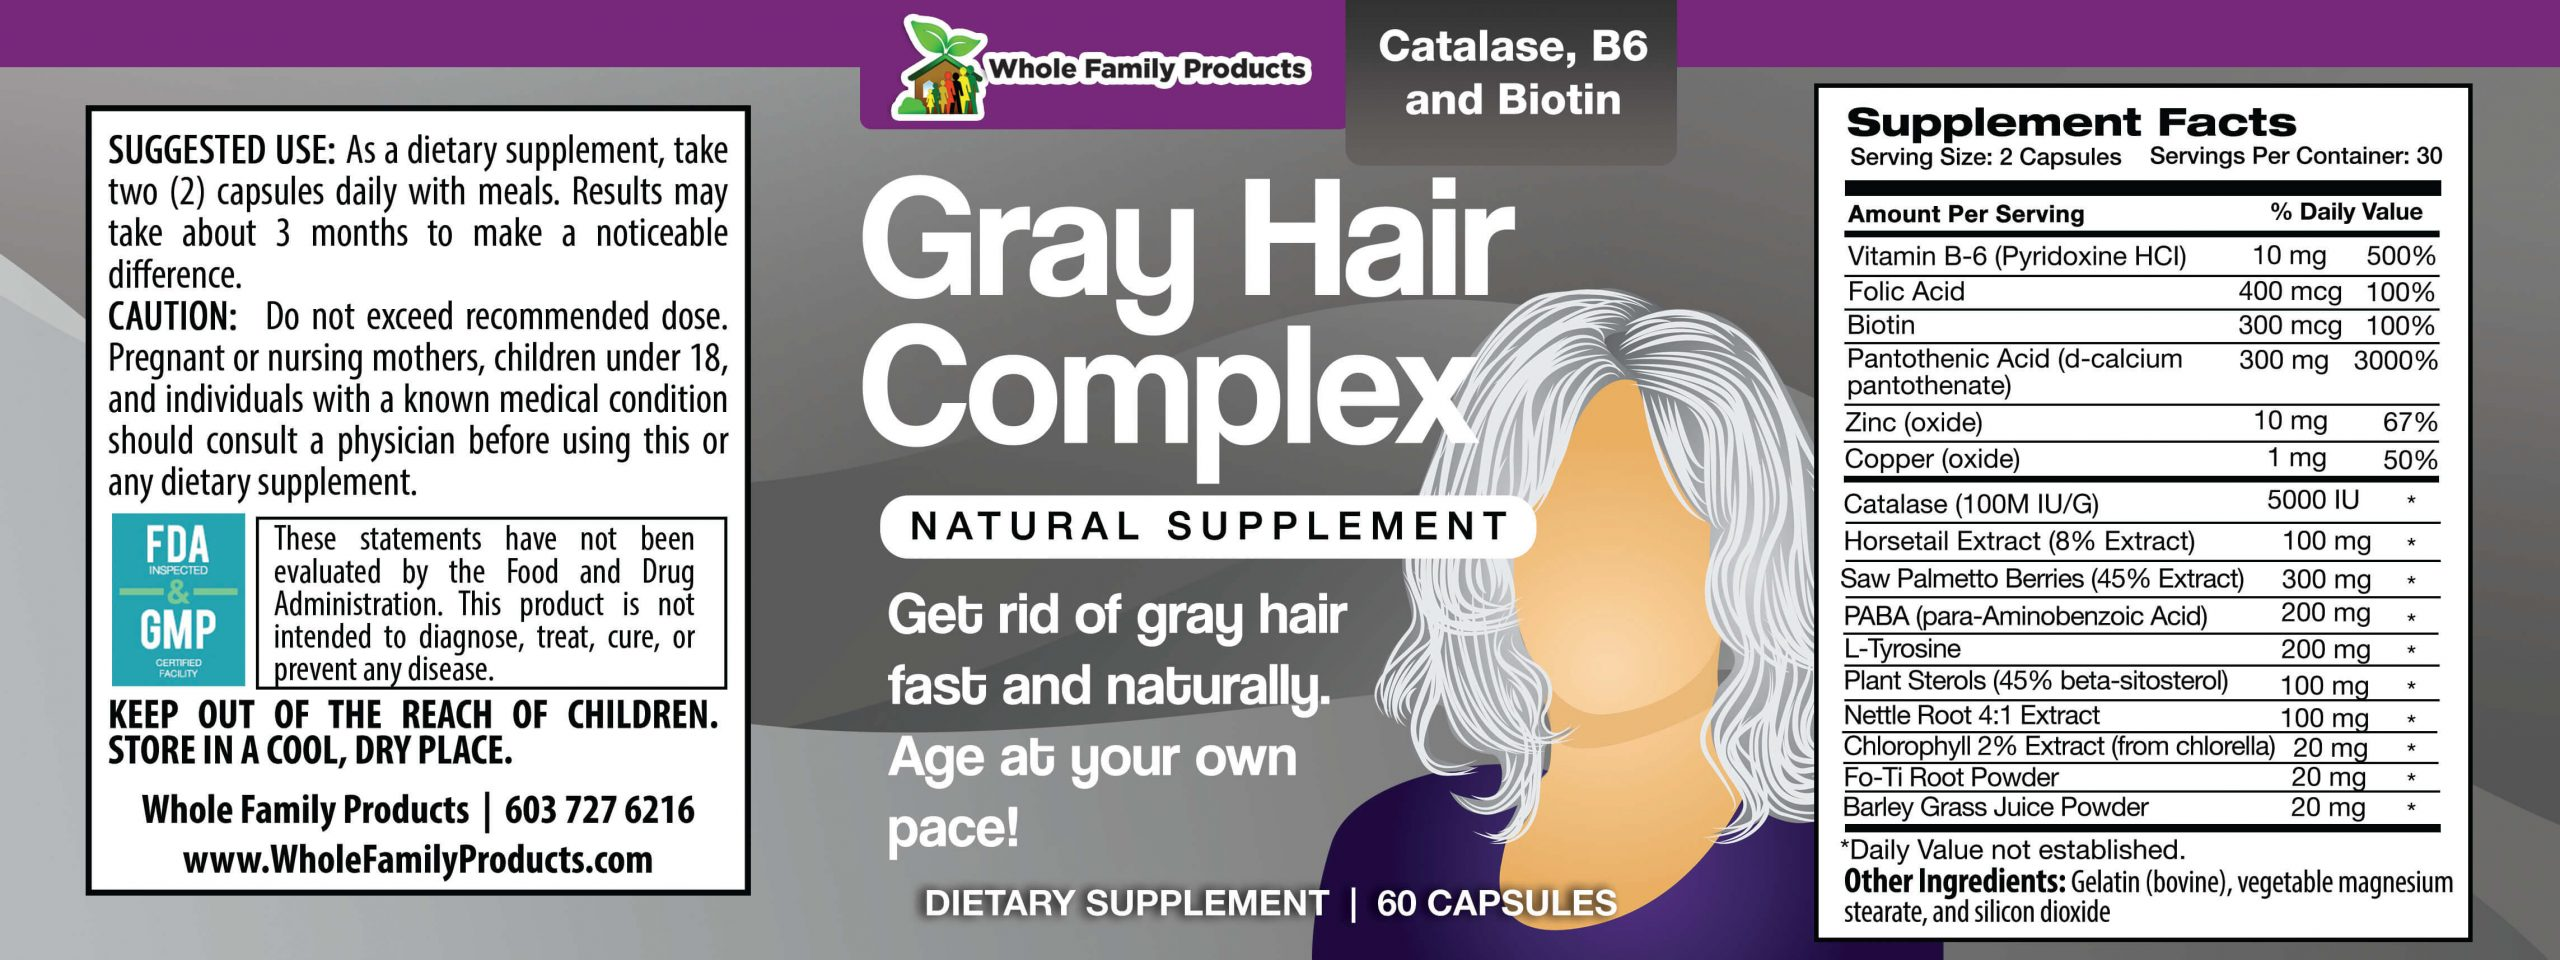 Gray Hair Complex Product Label